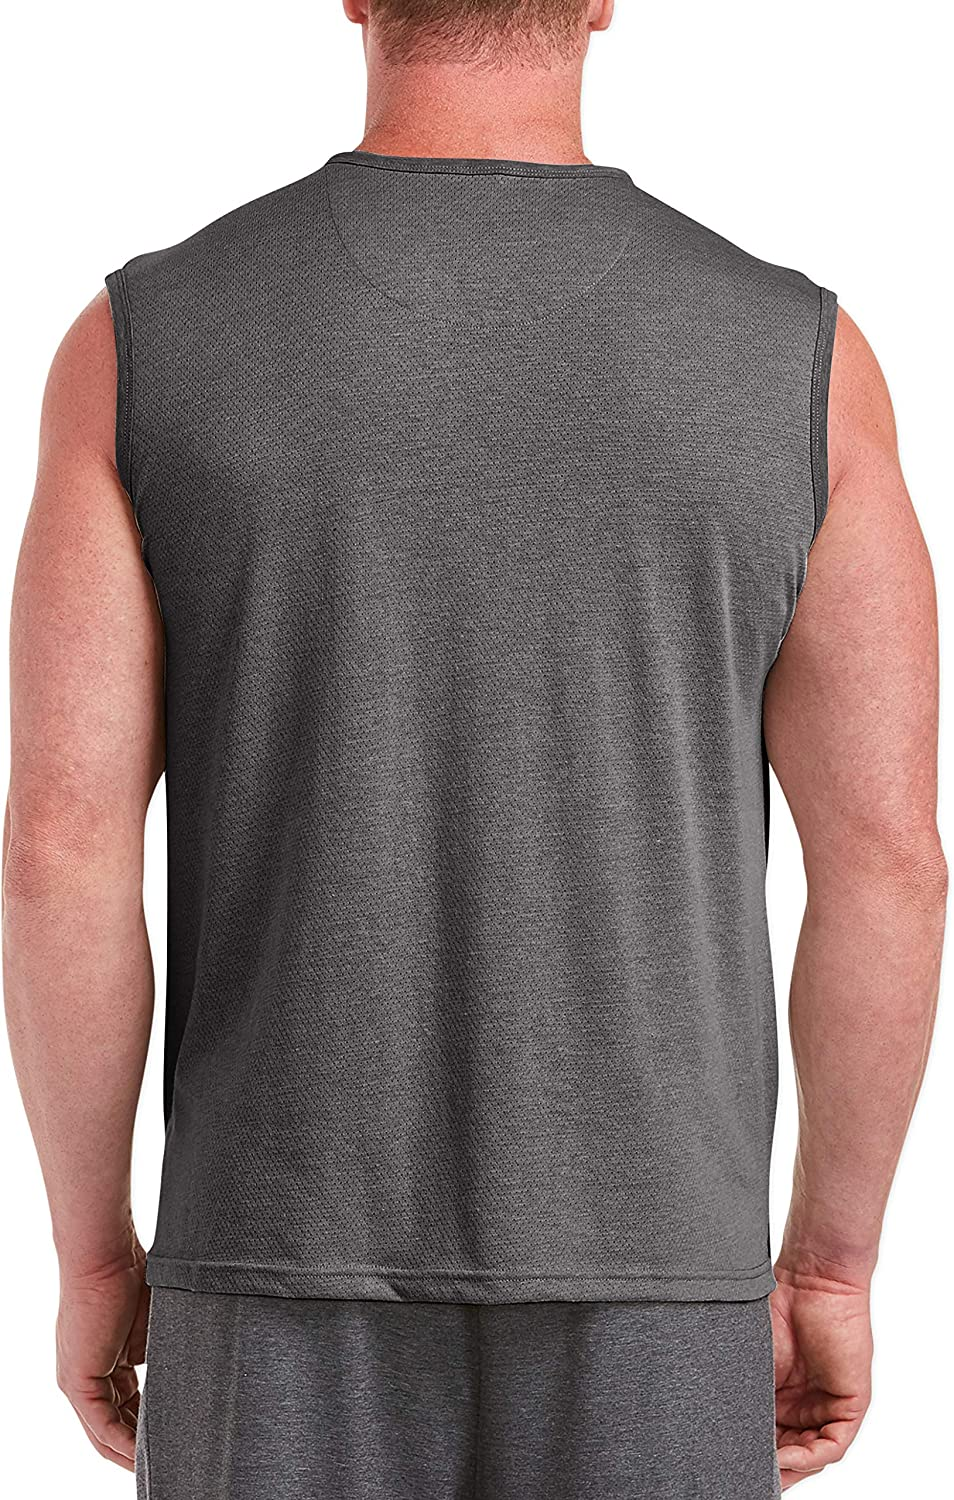 Essentials Mens Big /& Tall Performance Cotton Muscle Tank fit by DXL